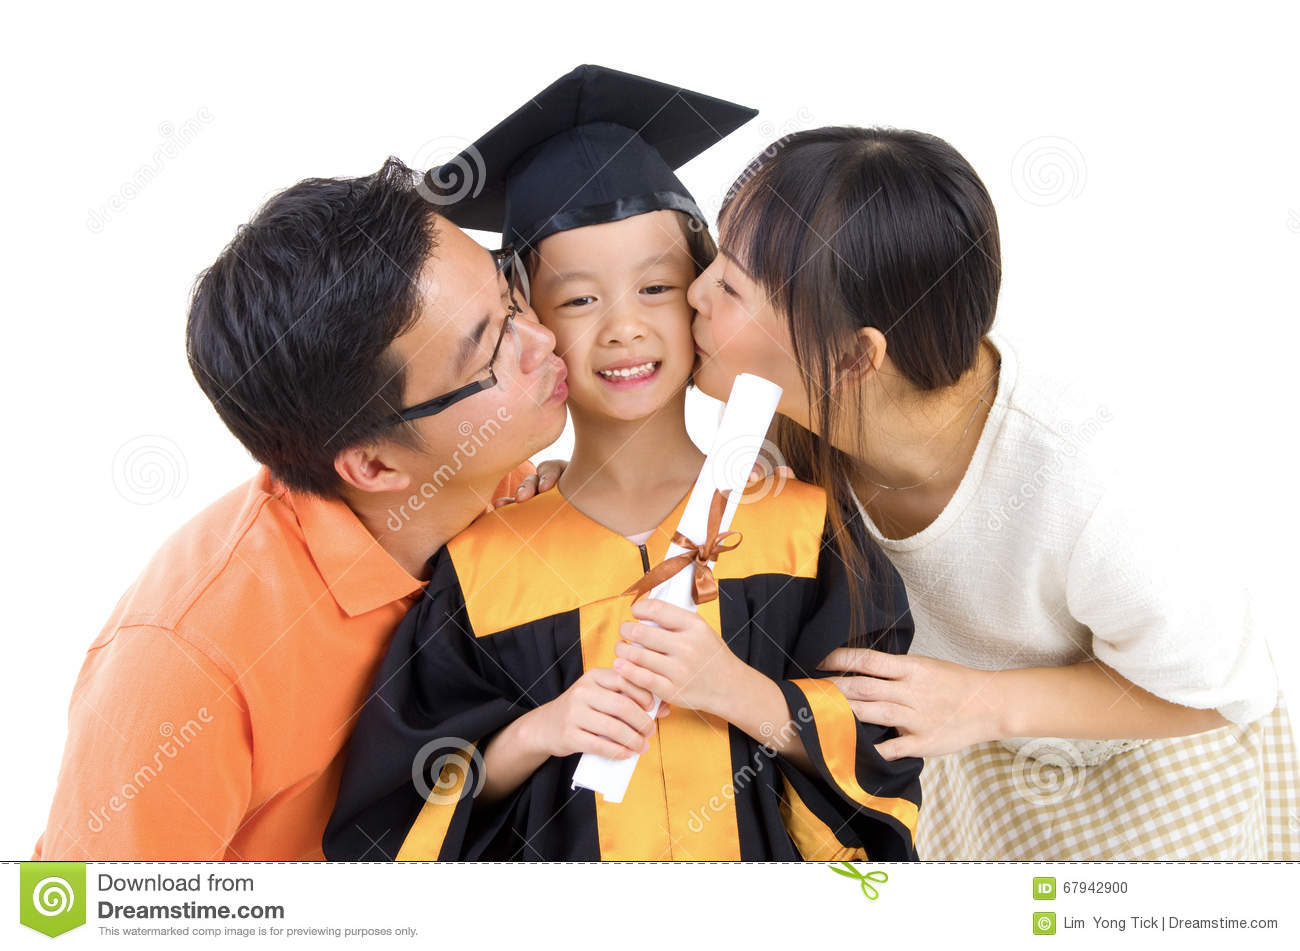 Graduation kid stock photo. Image of concept, chinese - 67942900